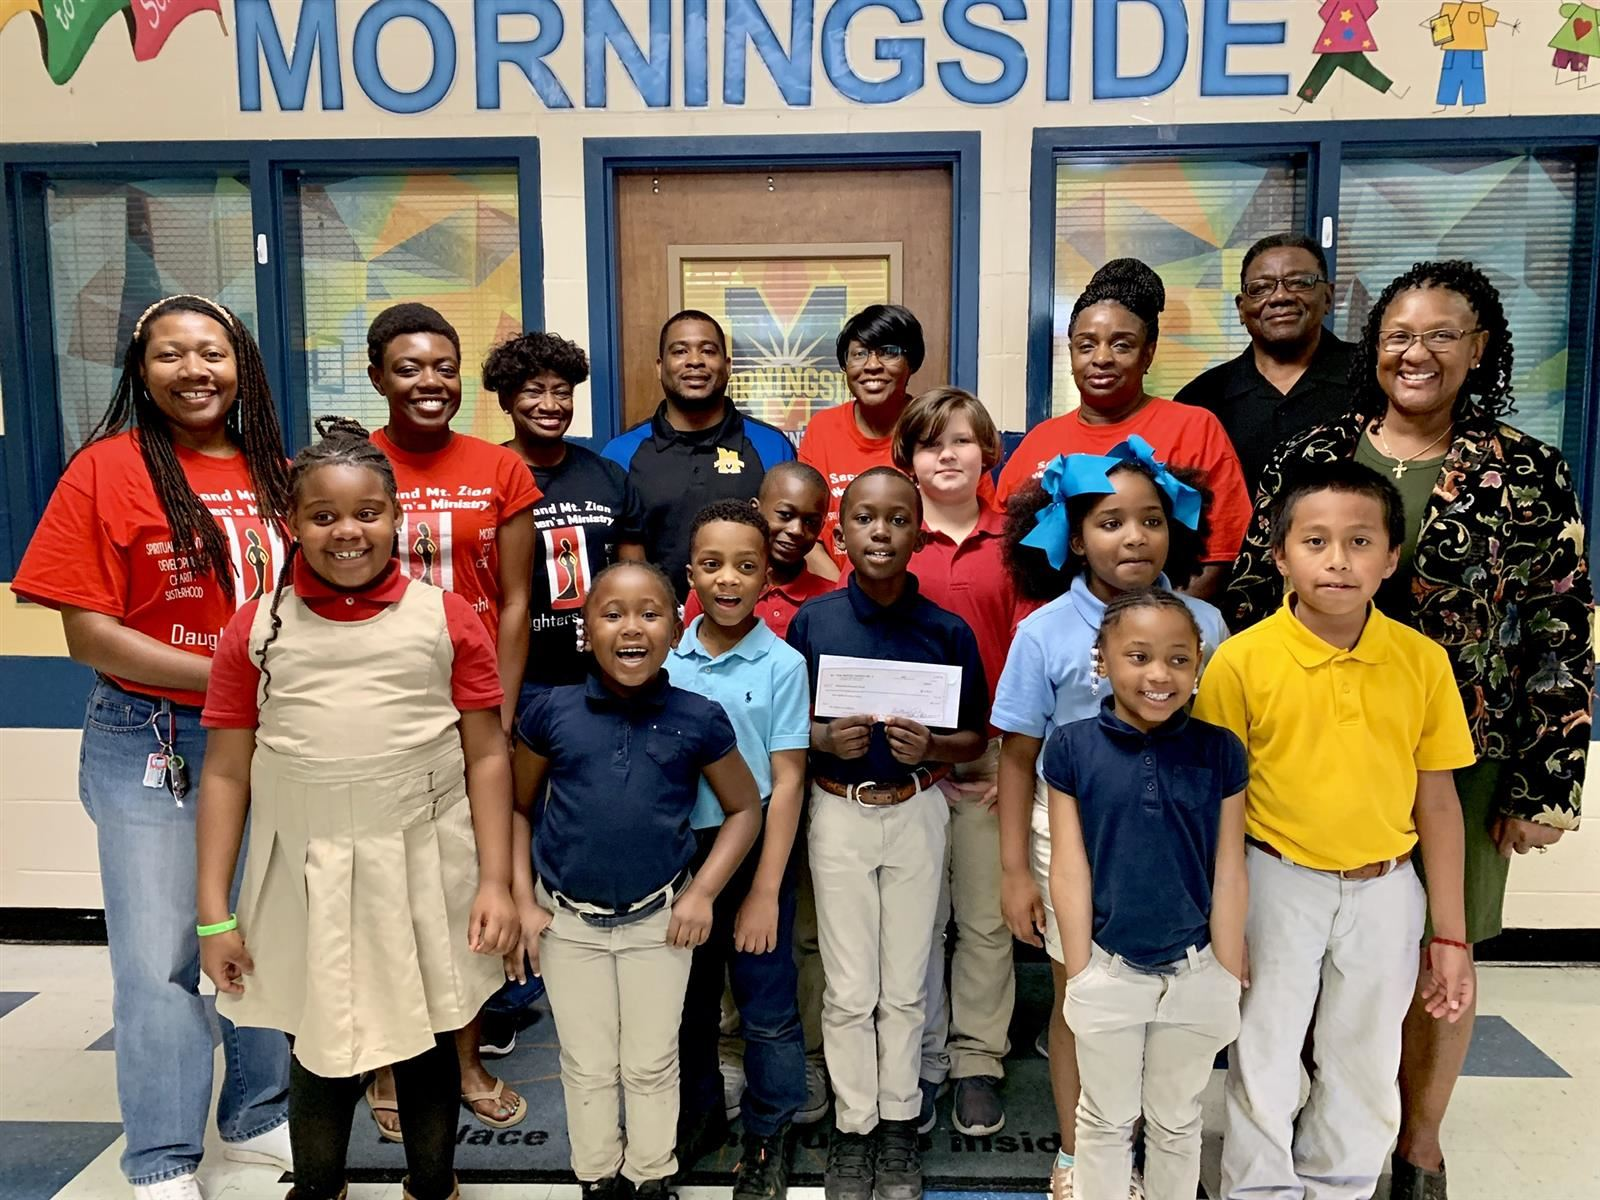 Second Mt. Zion Donates to Morningside